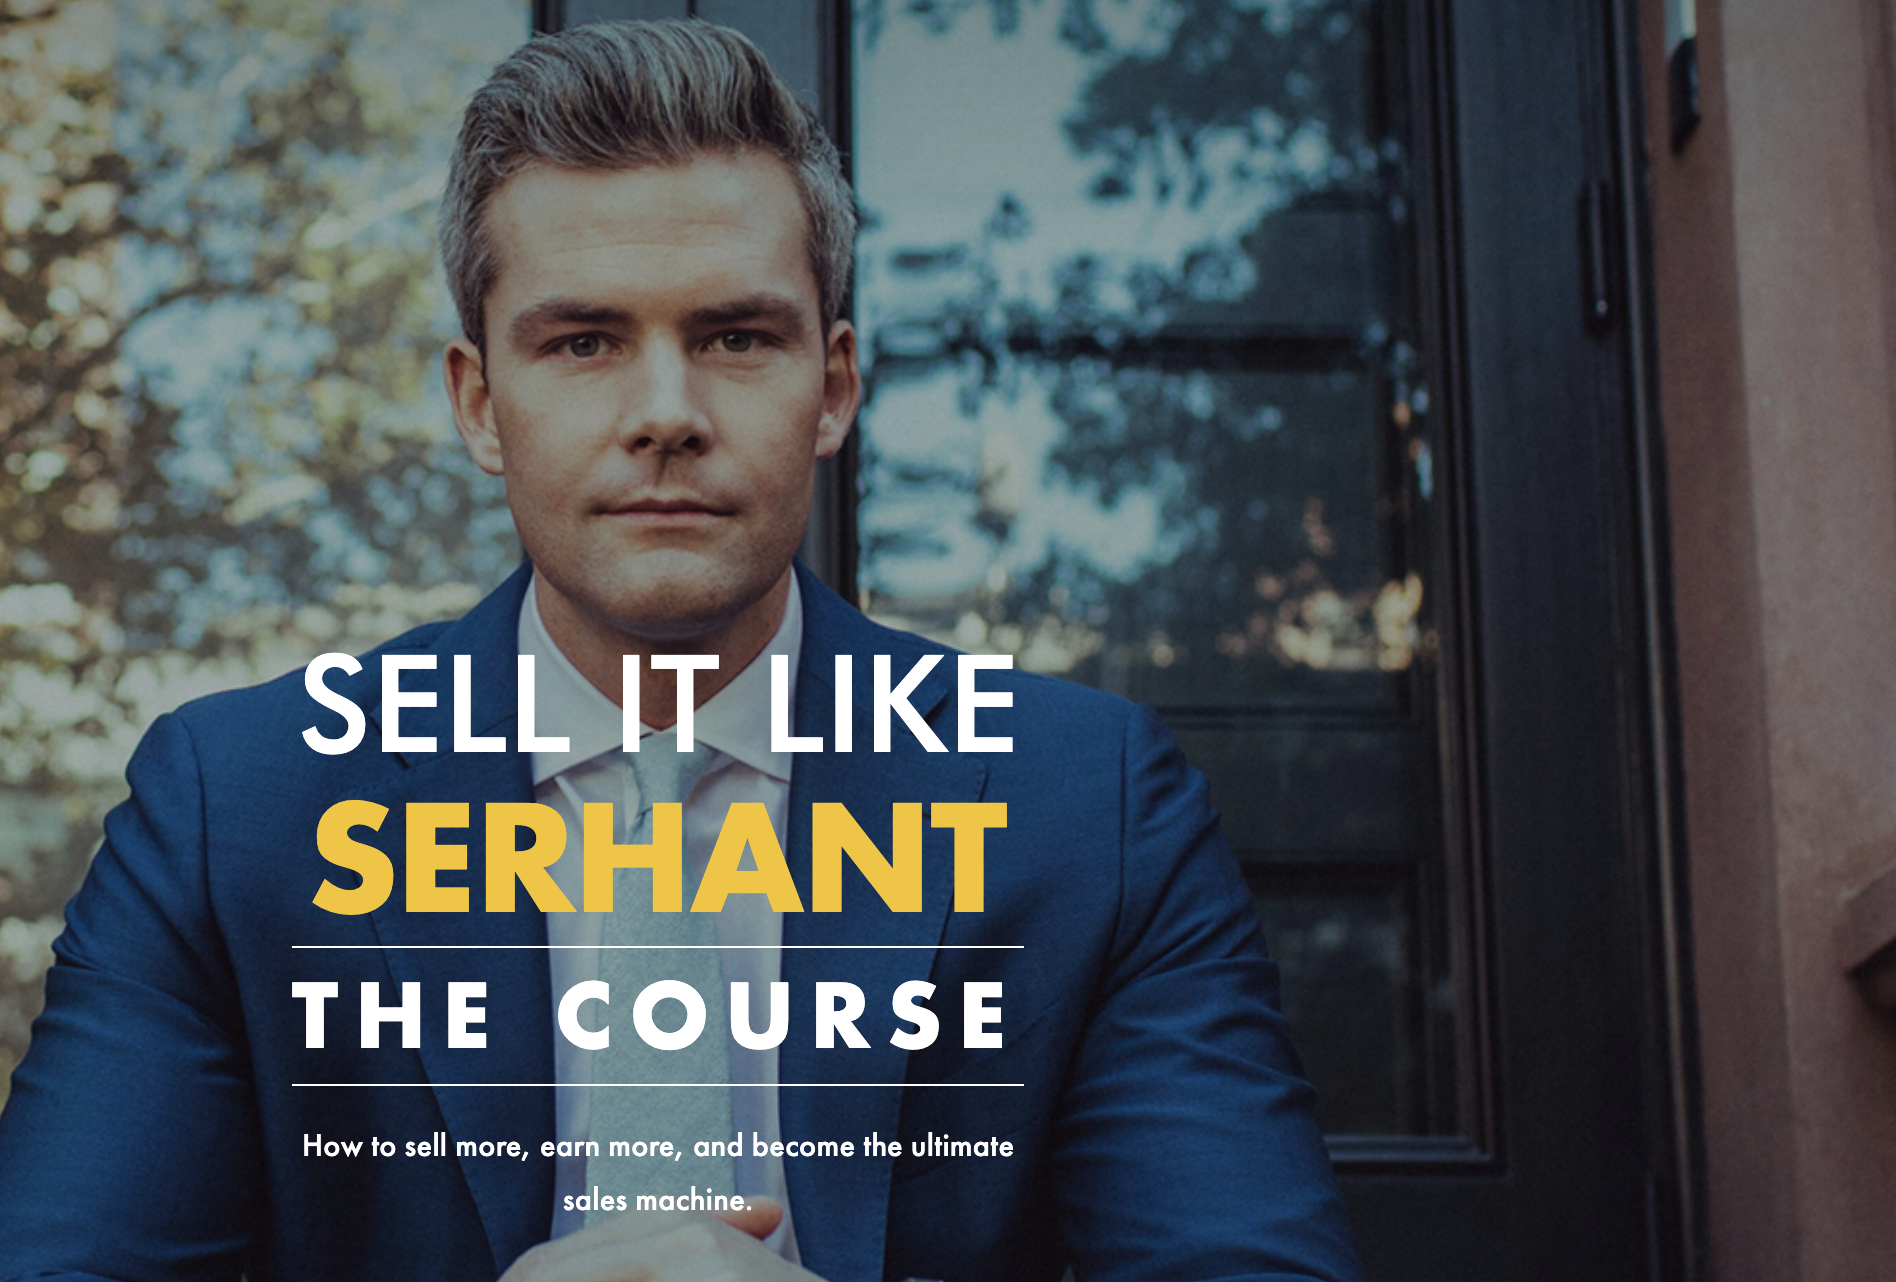 """""""Ryan Serhant's Sales Course Becomes The #1 Selling Real Estate Course of All Time"""" - - OFF THE MRKT"""